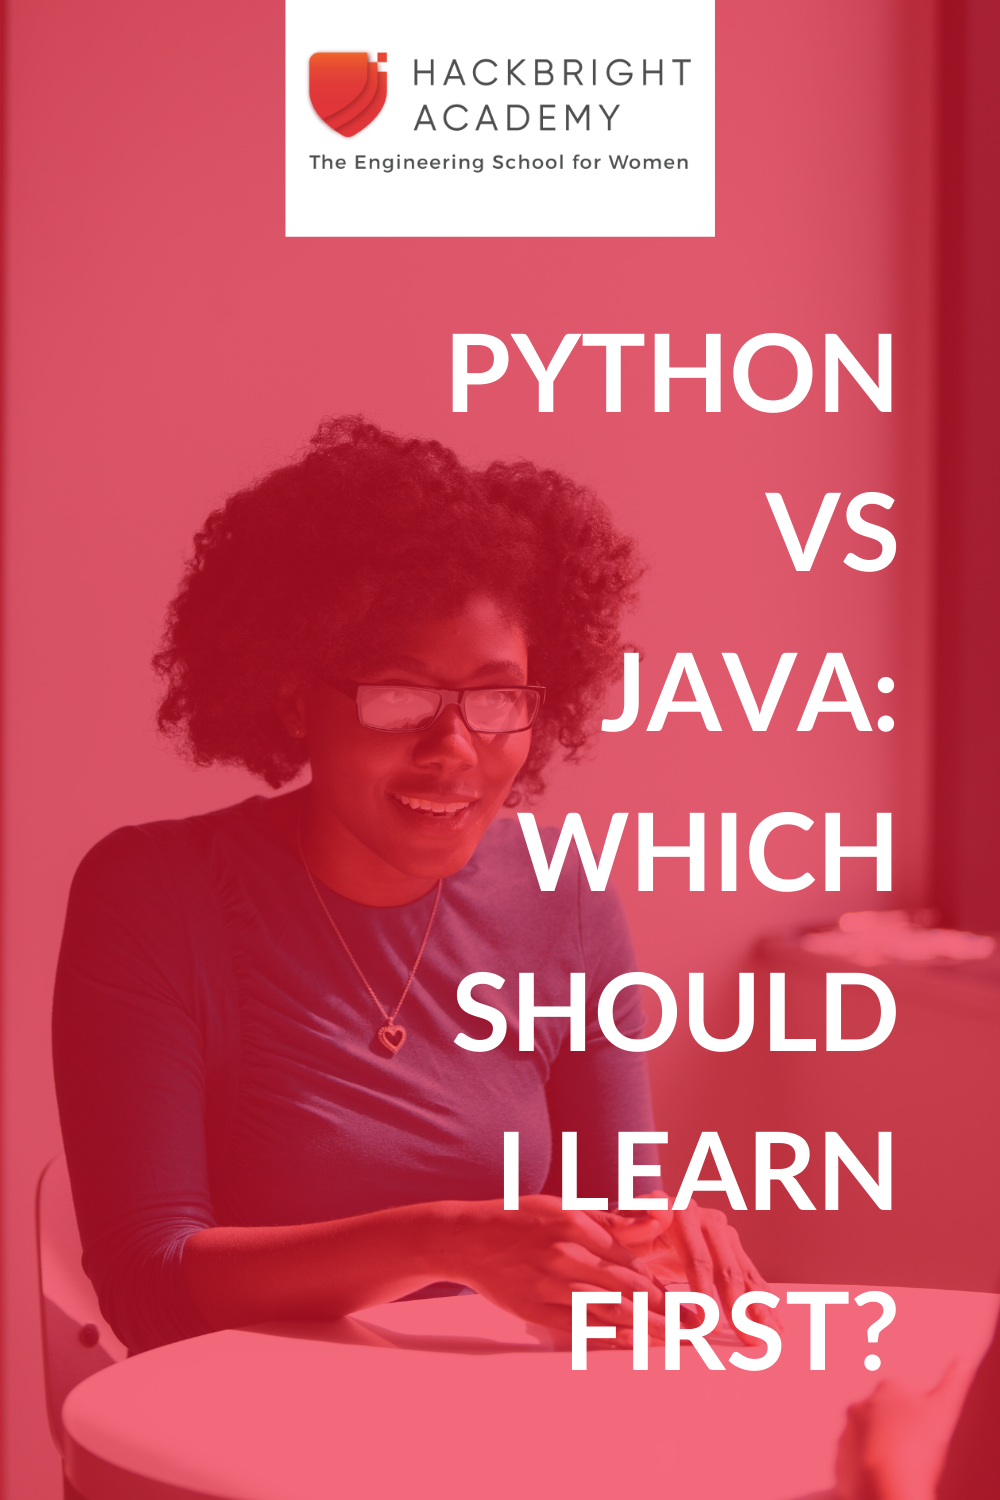 You Can Learn Python at Hackbright Academy